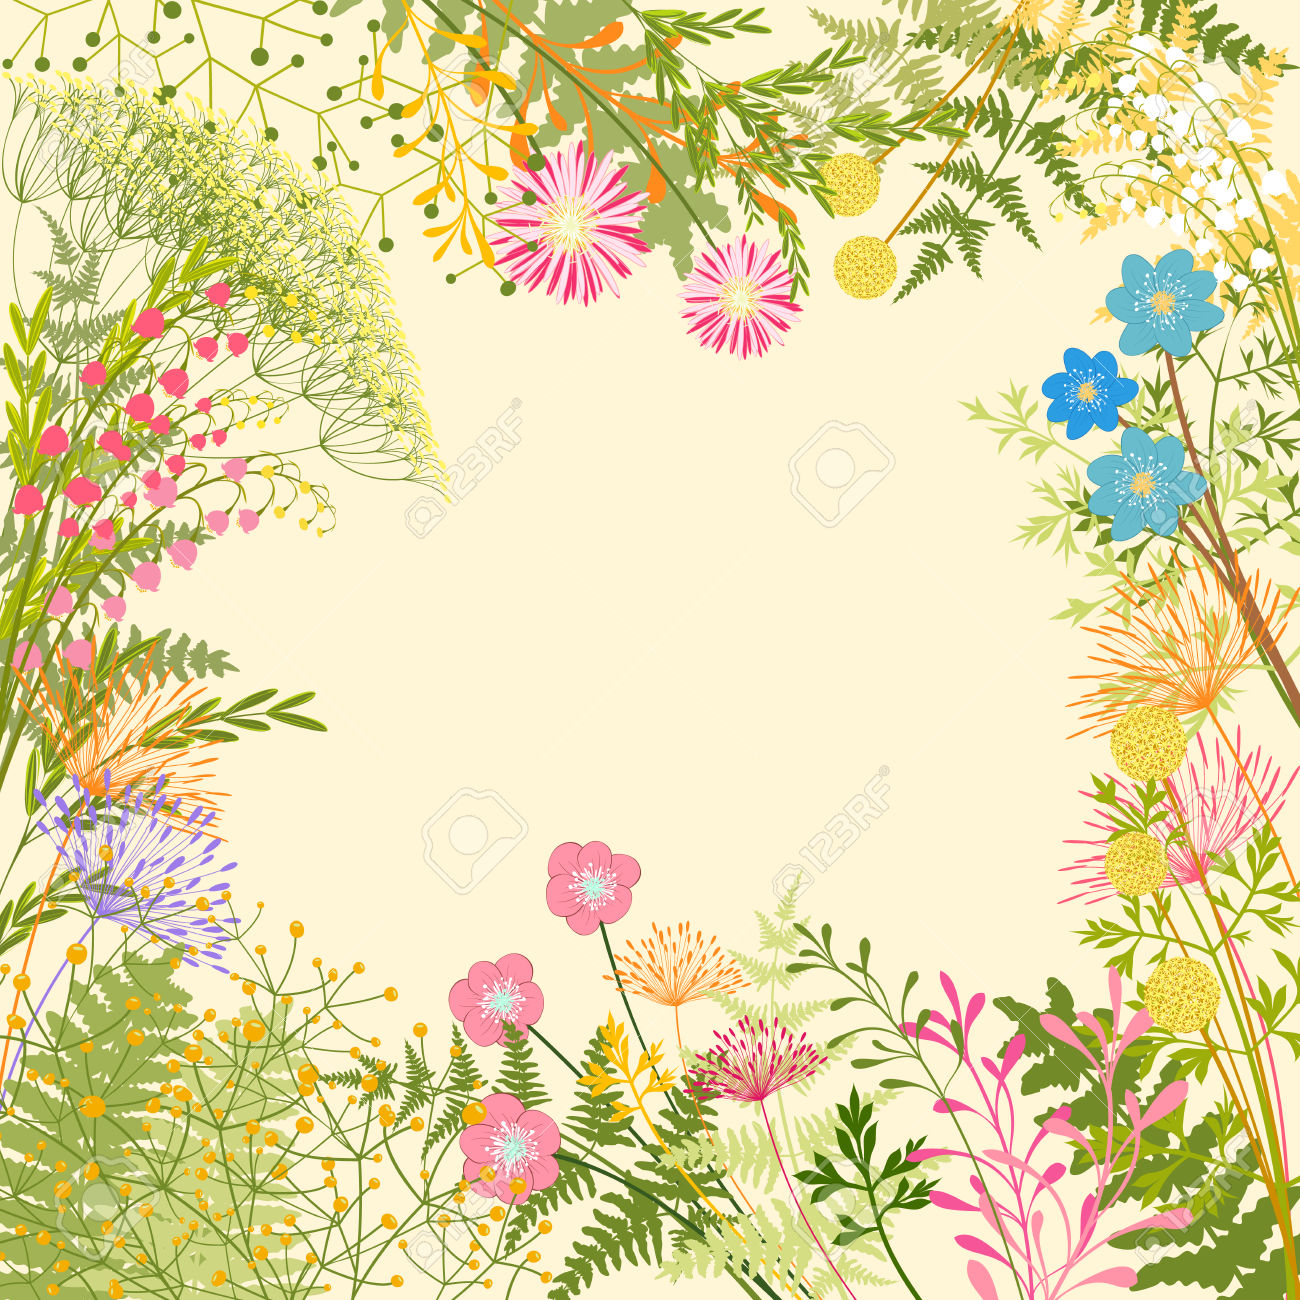 Springtime Colorful Flower Herb Garden Party Background Royalty.